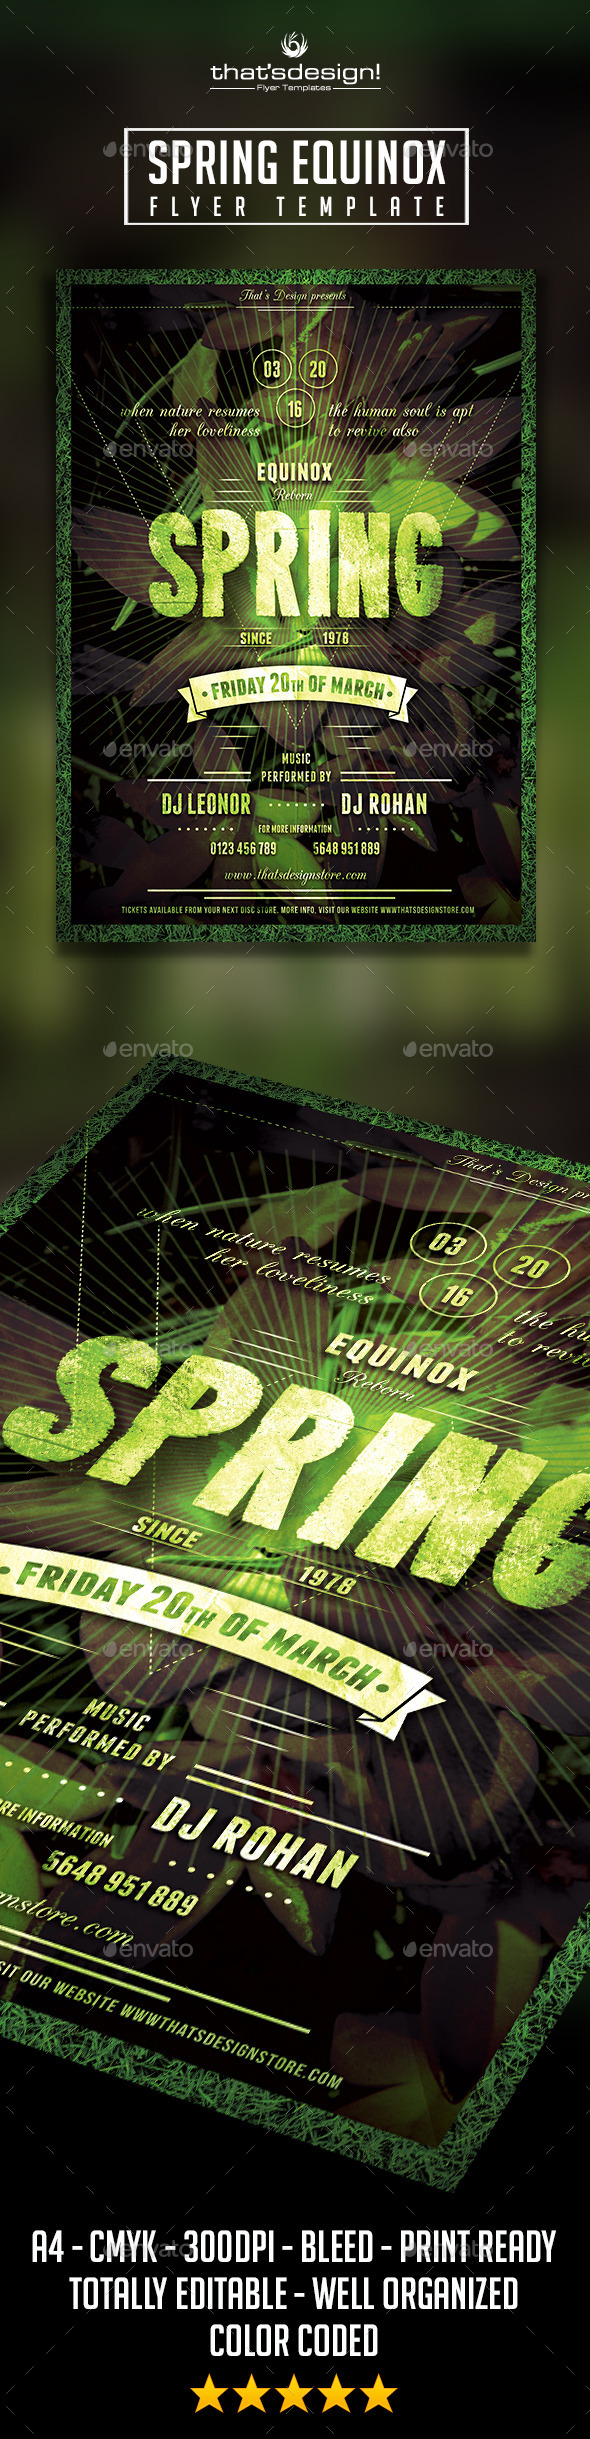 GraphicRiver Spring Equinox Flyer Template 10721834